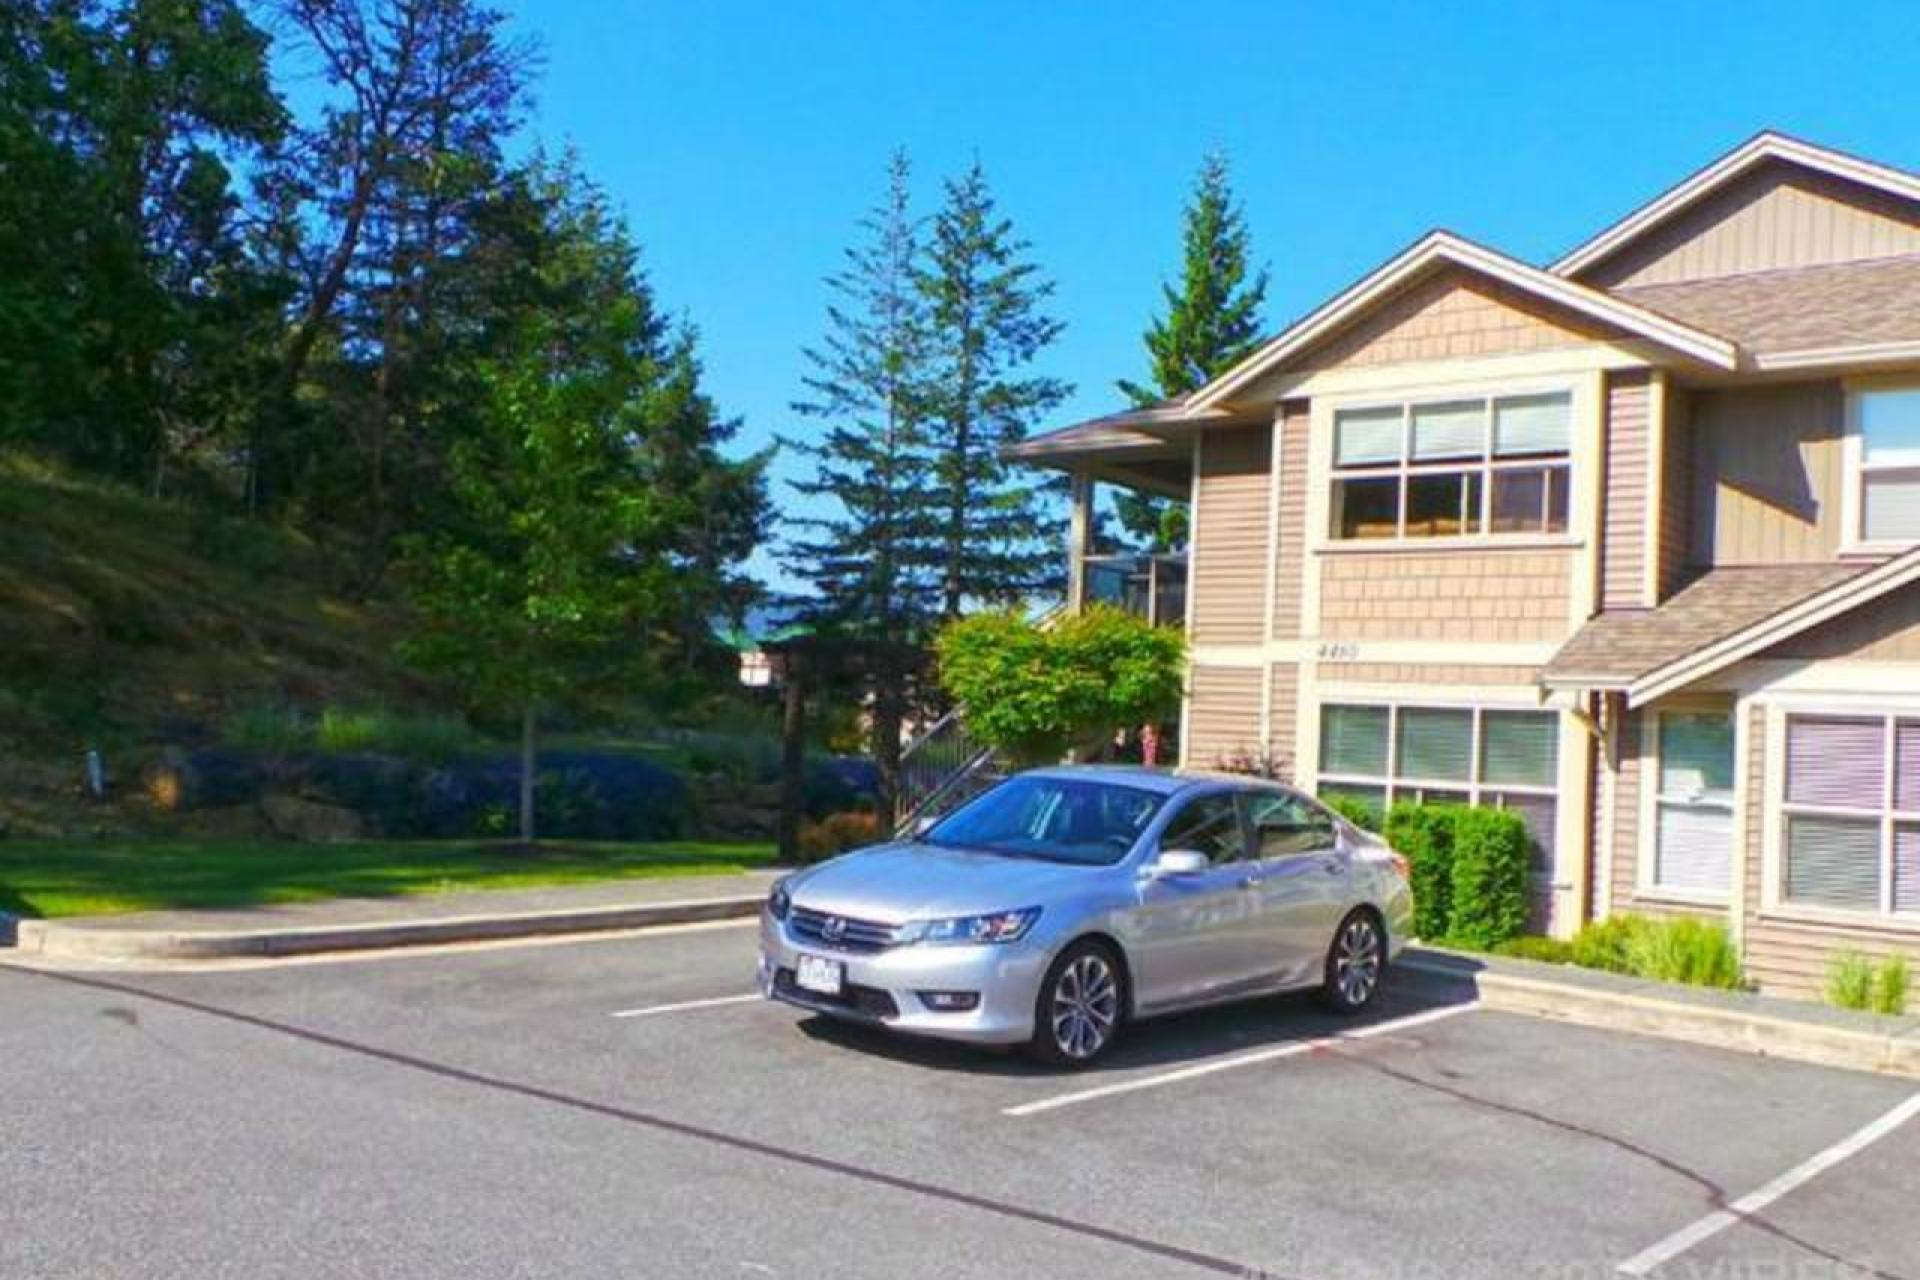 201 - 4460 Hedgestone Place, Uplands, Nanaimo